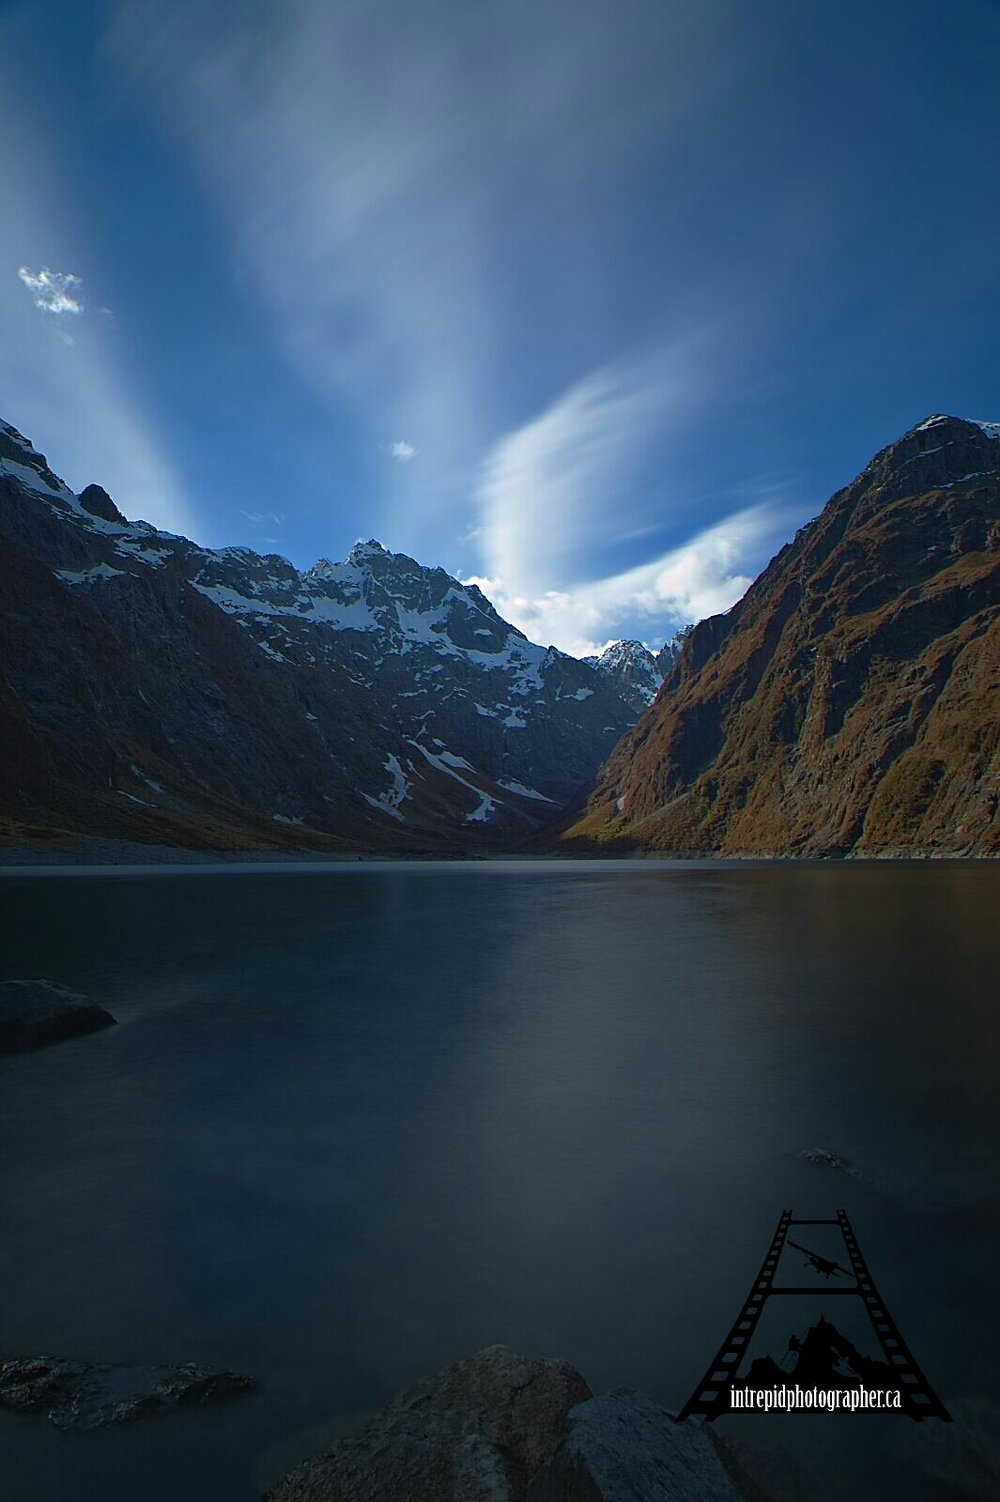 Lake Marian, Fiordland National Park, New Zealand